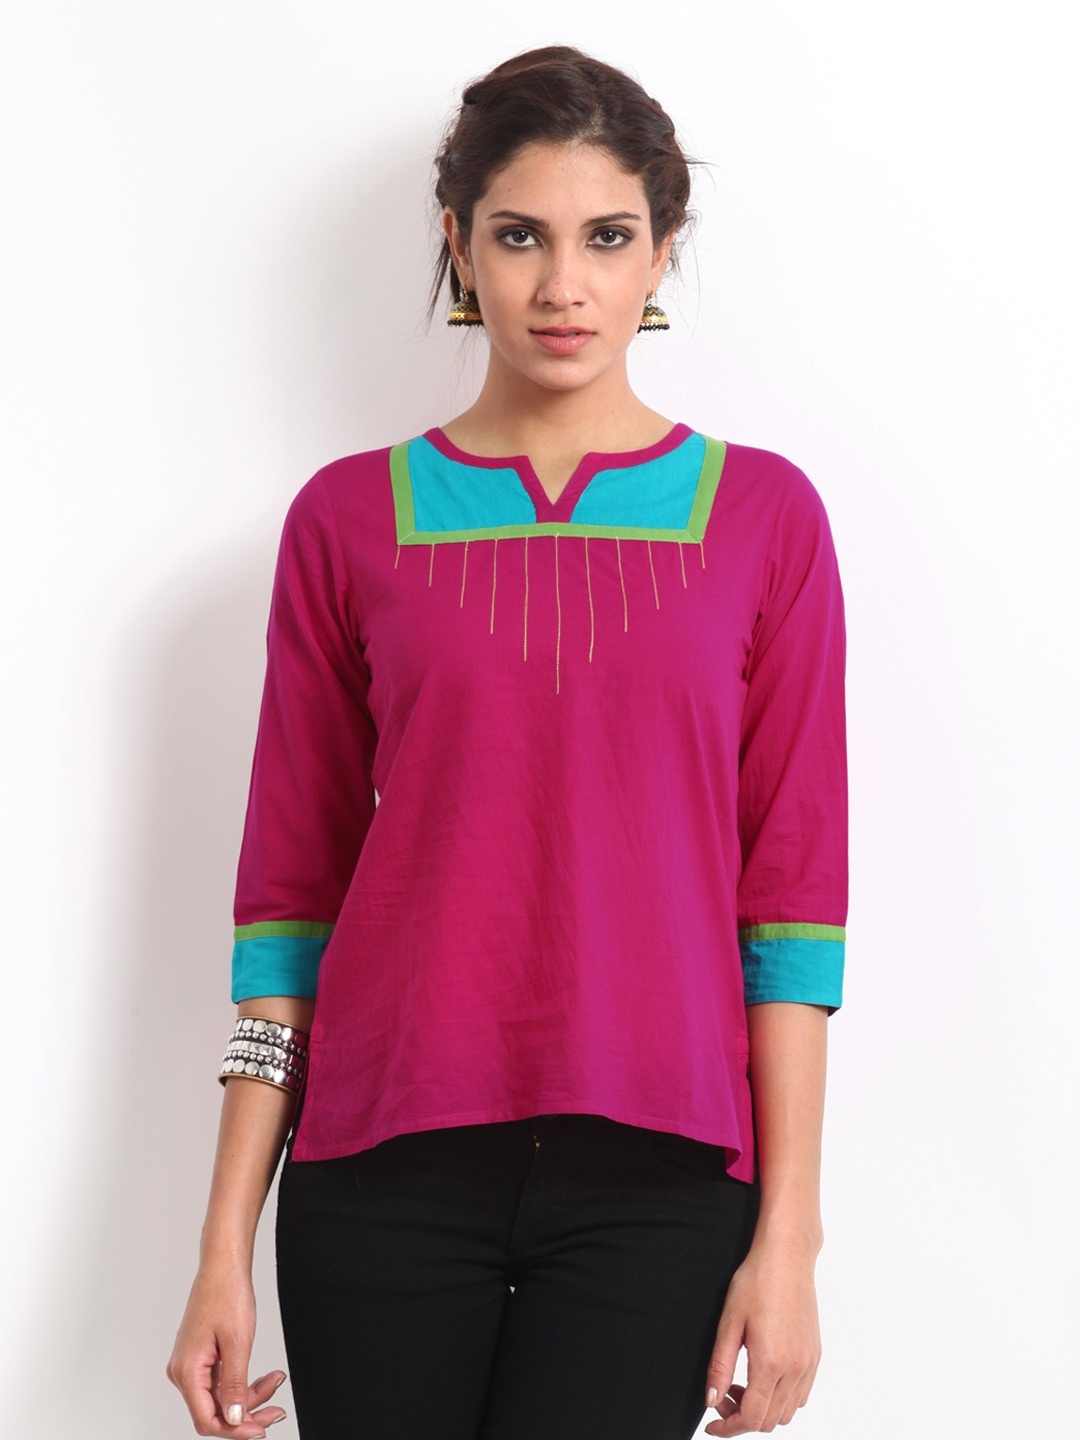 Mirage-Women-Tops_ Ladies Tops and Shirts By Best Brands